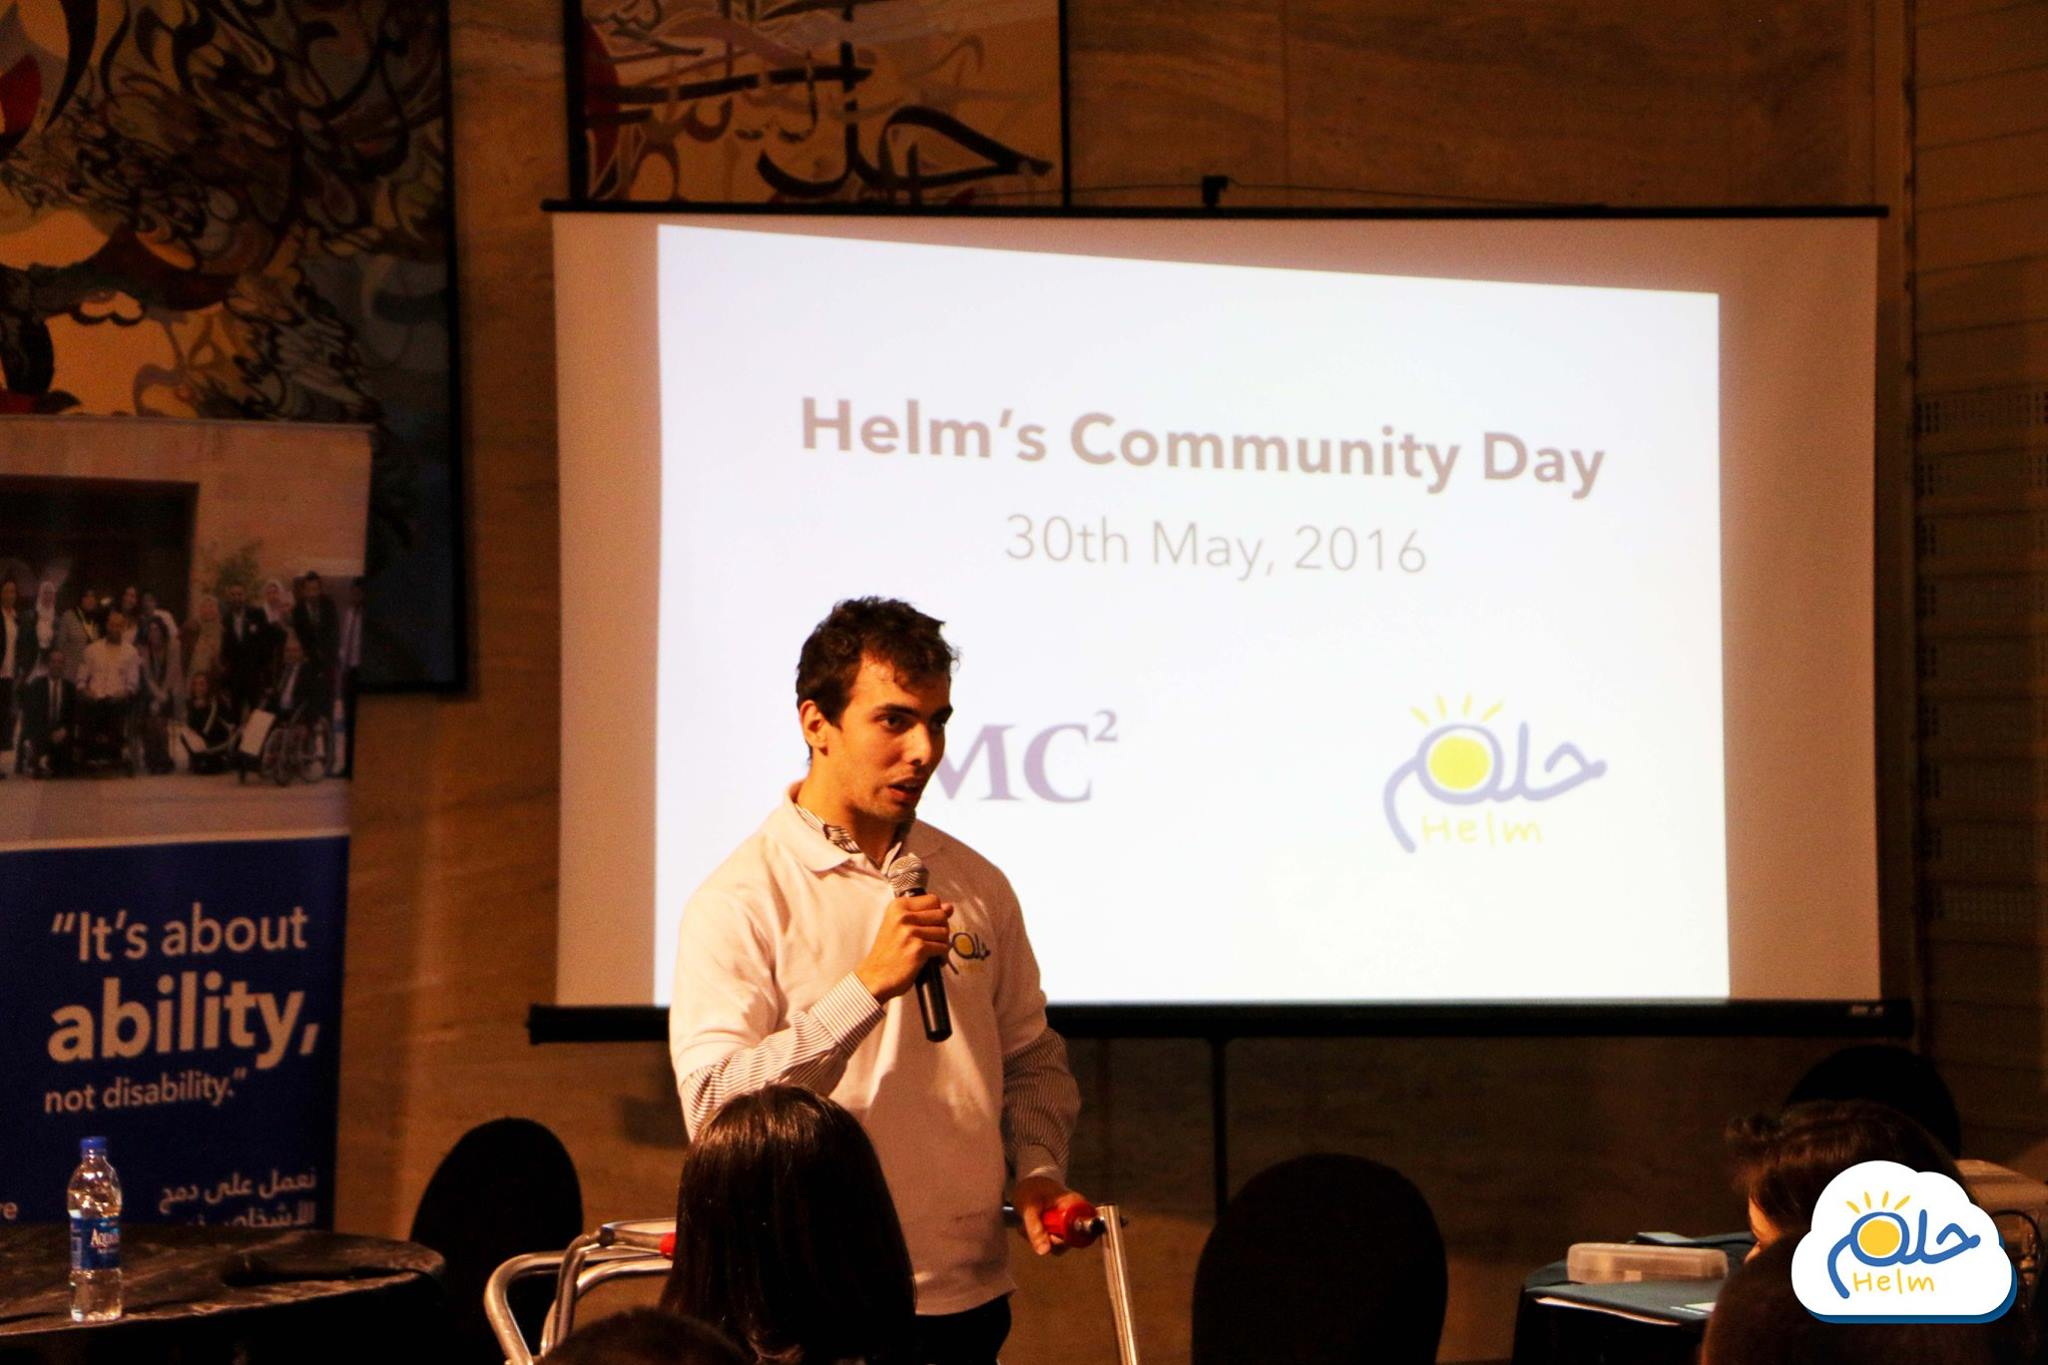 Magdy Abdel Sayed at Helm NGO's Community Day (Photo: Helm NGO via Facebook)